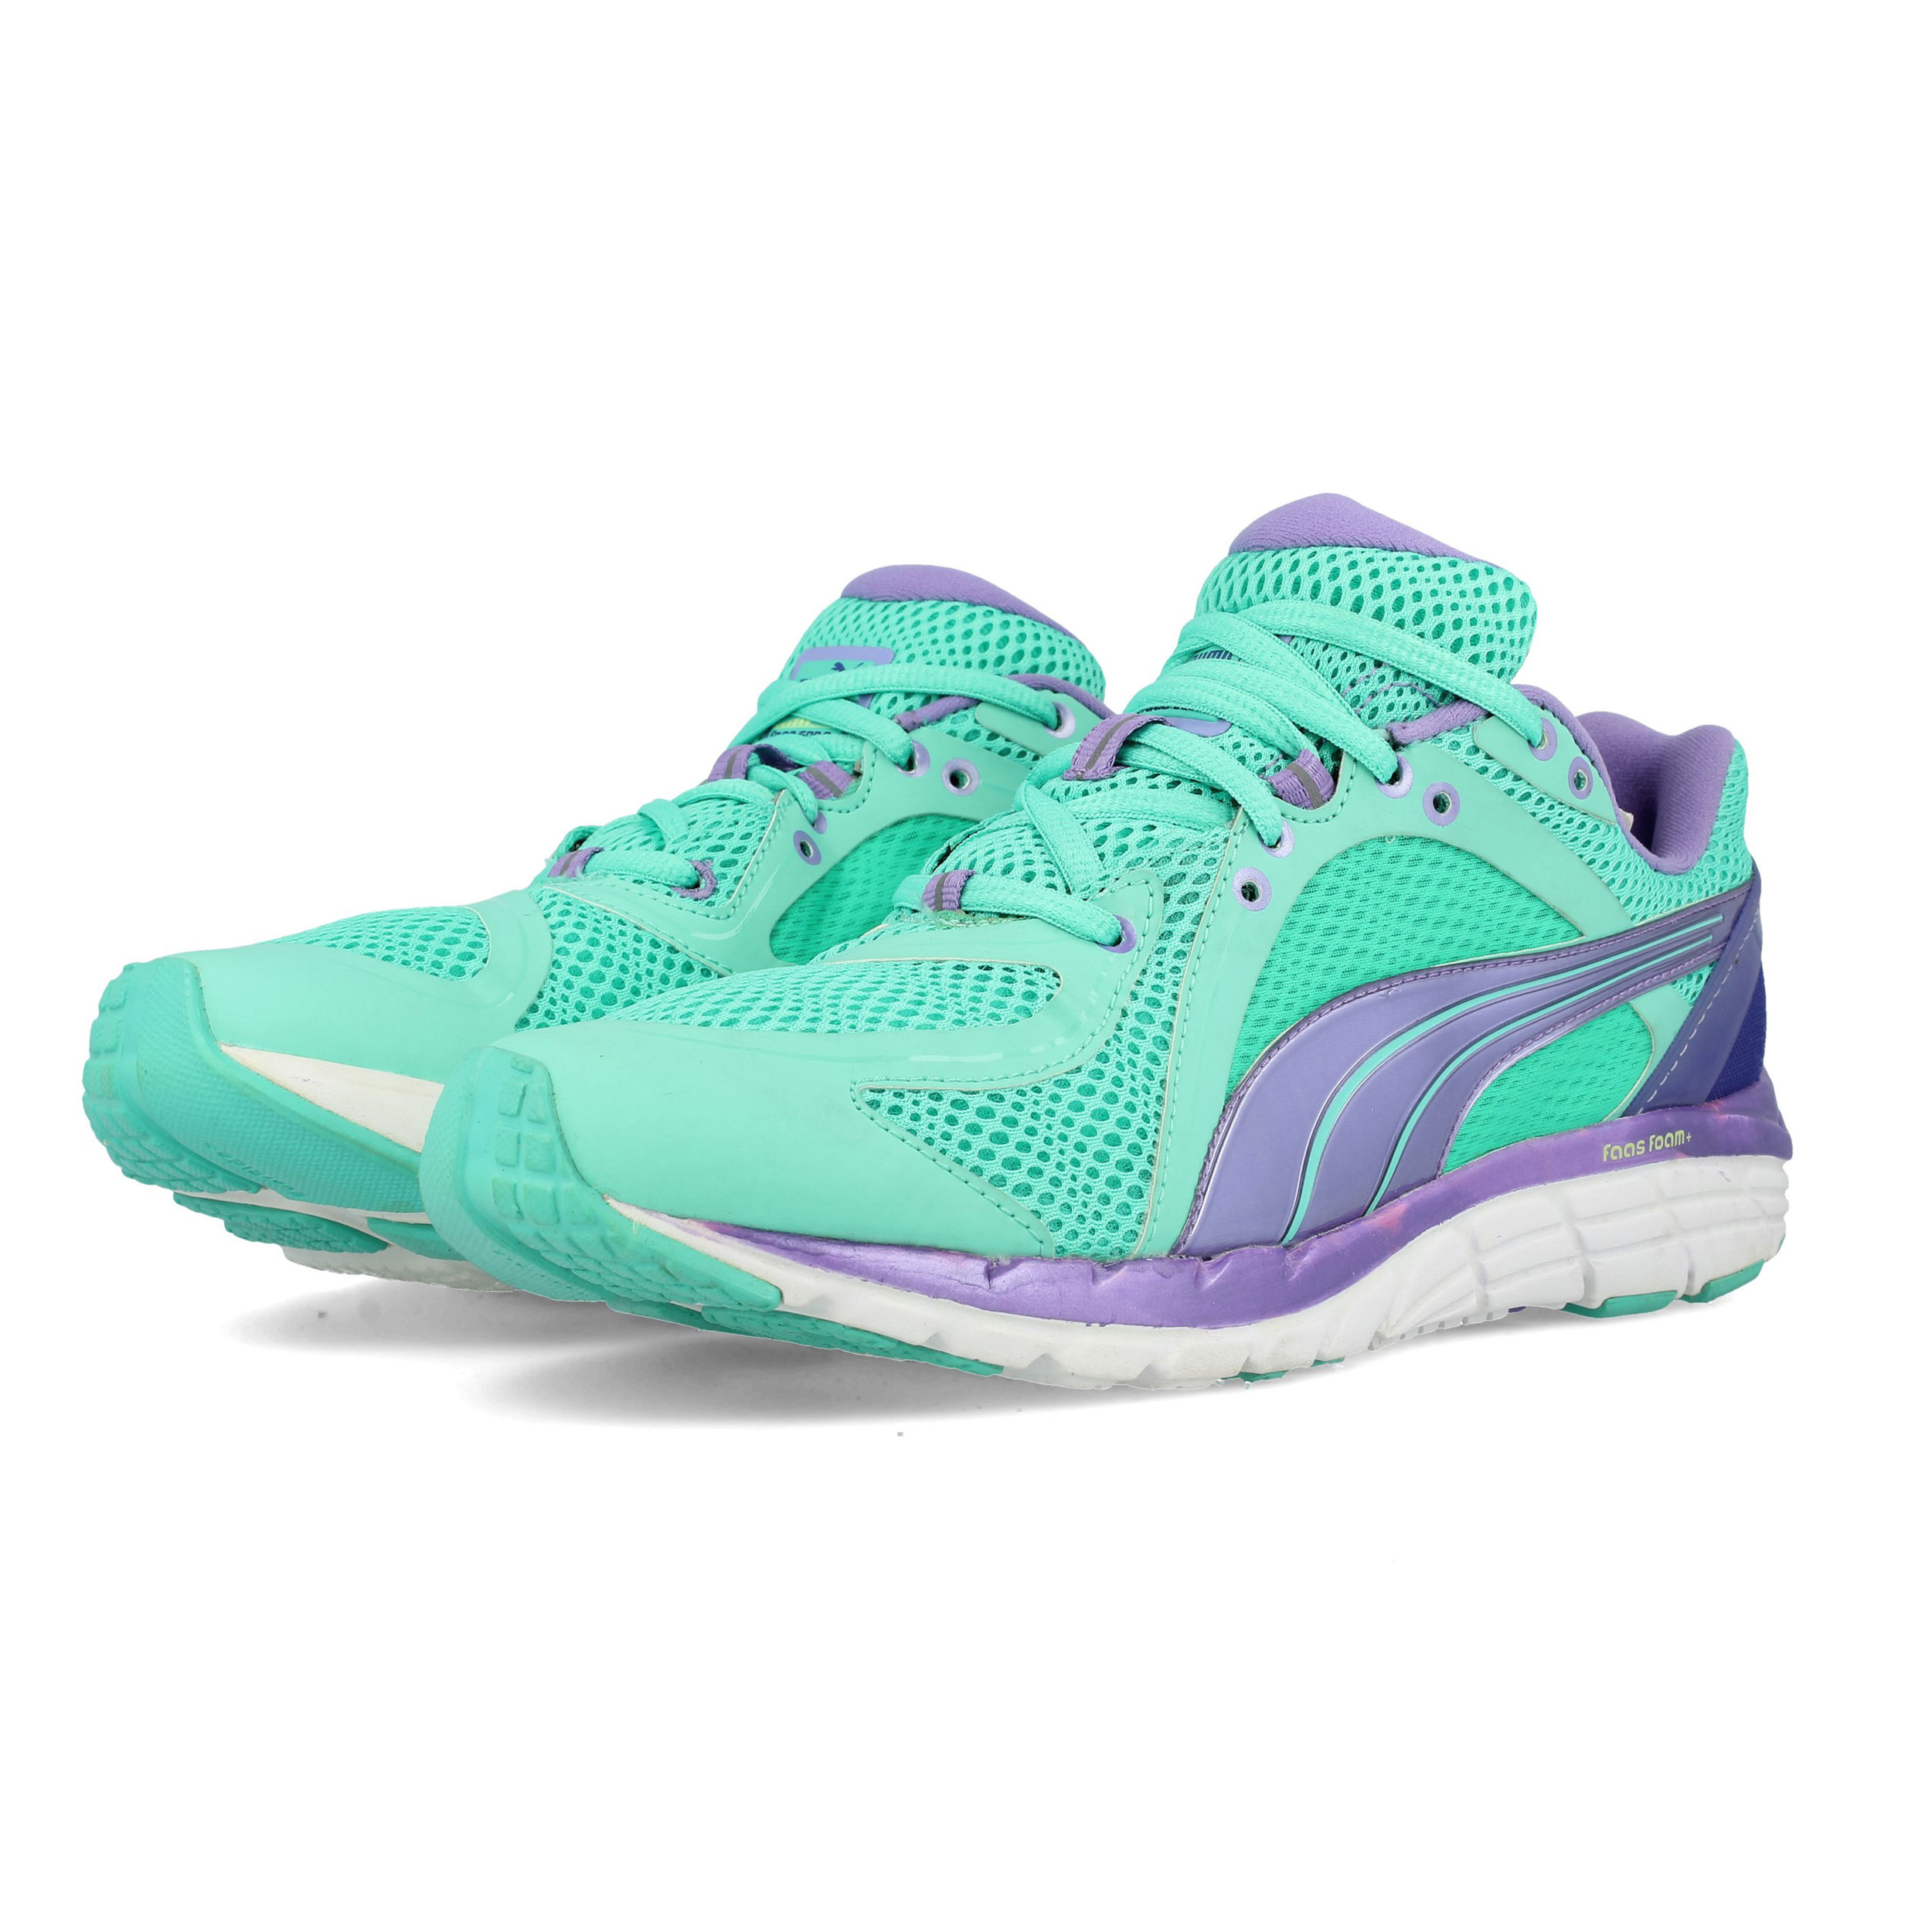 To acquire Sports Puma shoes green pictures trends